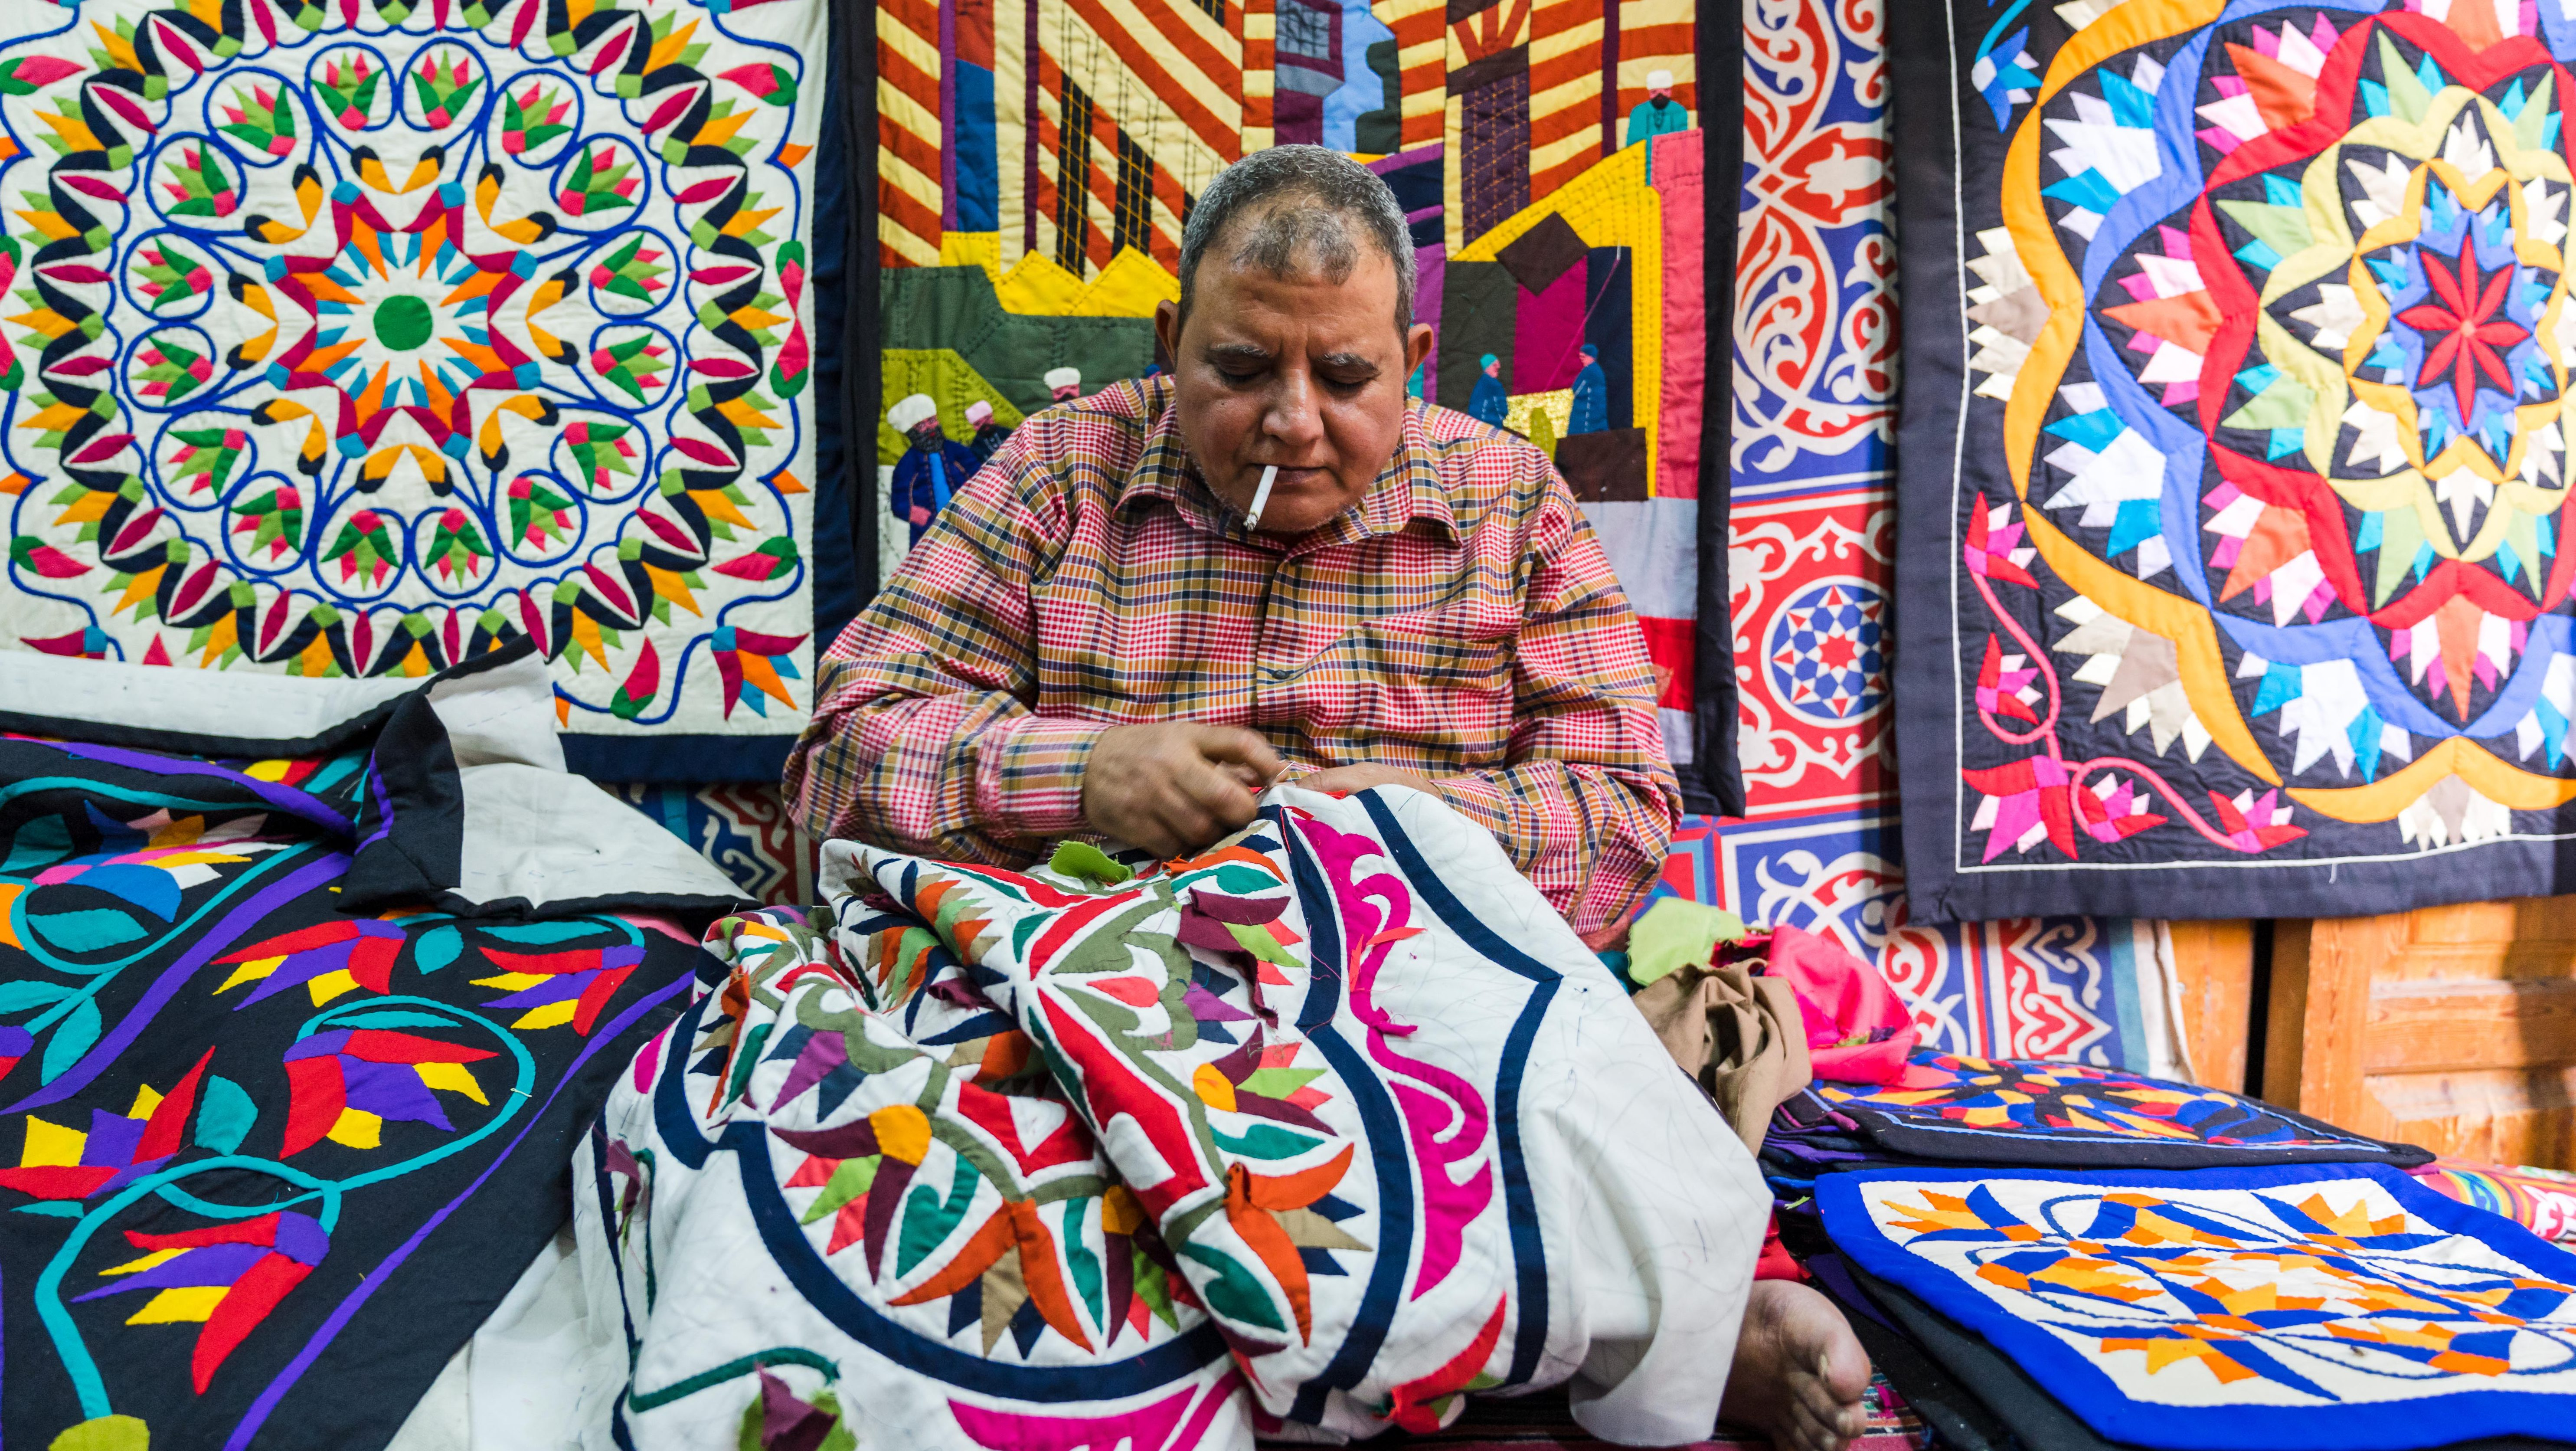 An artisan stitching a new design for a tent. For centuries Khayamiya artisans produced tents, cloths and saddles for those embarking on hajj, the pilgrimage to Mecca. The Sultan, sitting nearby on the ancient Fatimid gate, Bab Zuwaila, would watch the caravan depart in procession.